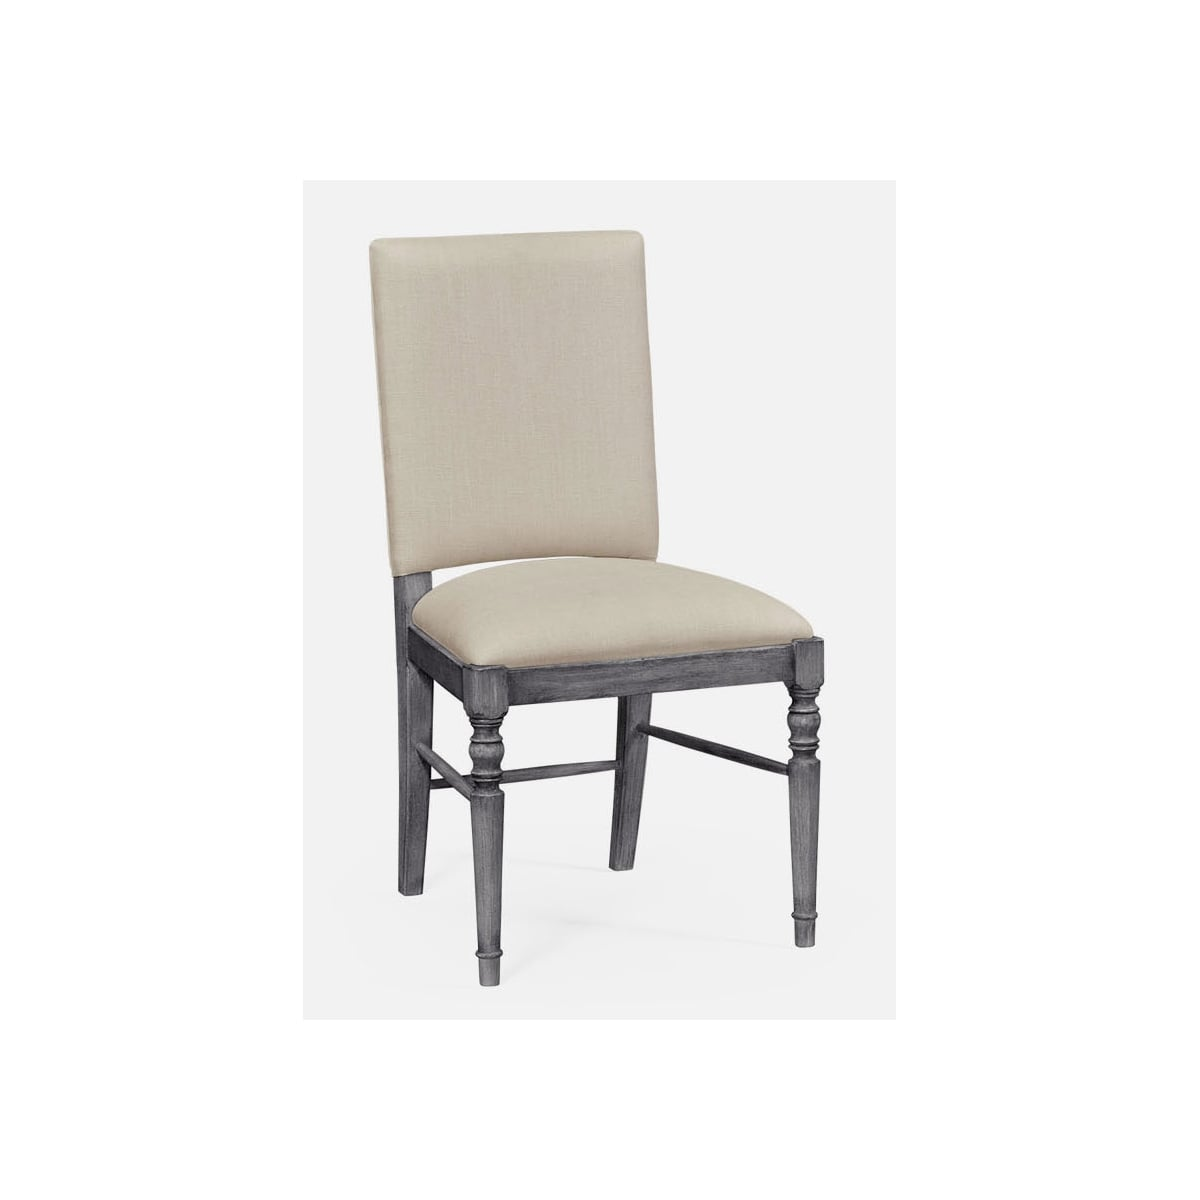 grey upholstered dining chairs uk chair upside down on table dark swanky interiors